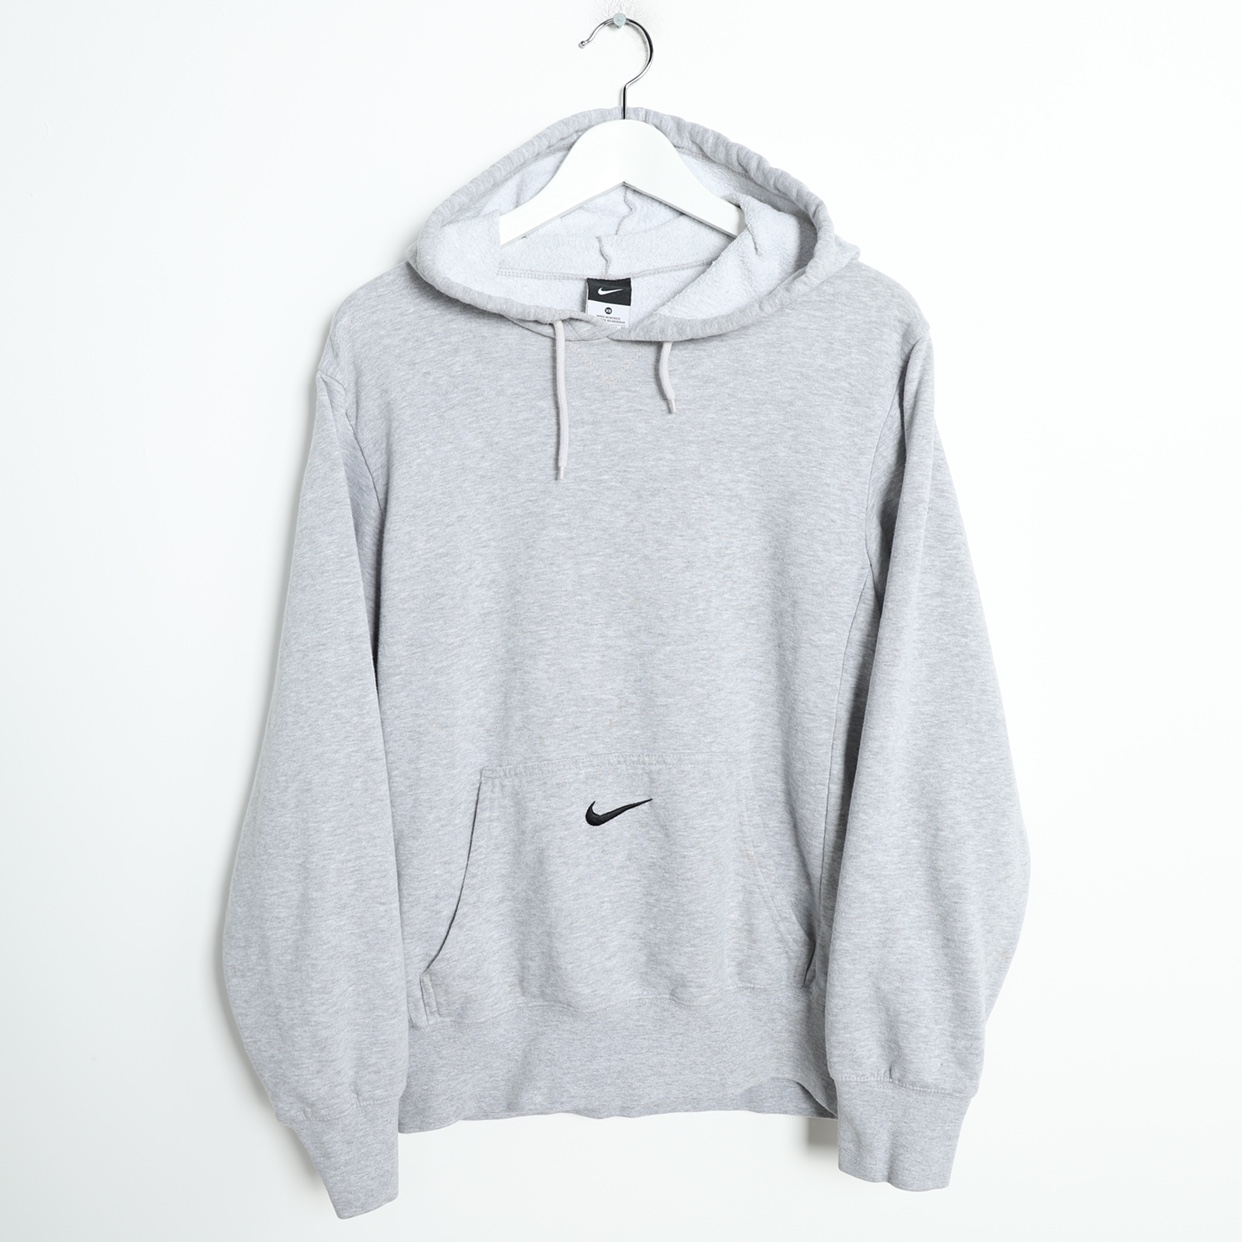 official store great quality offer discounts Vintage Nike Central Pocket Logo Hoodie... - Depop